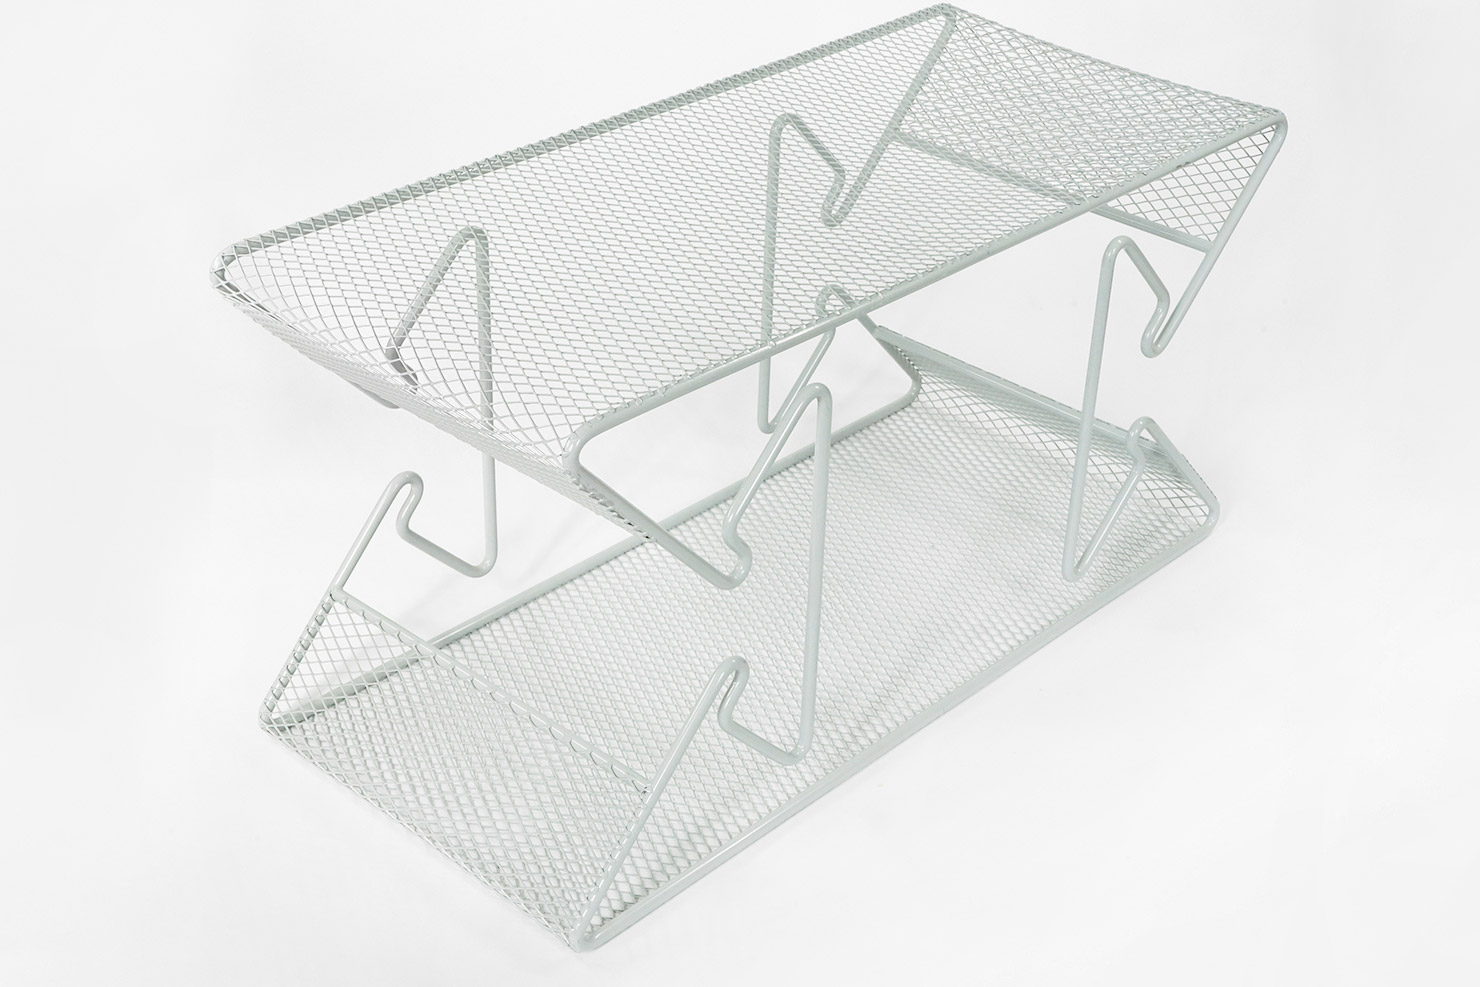 RORSCHACH TABLE GREY - REINIS DUCMANIS